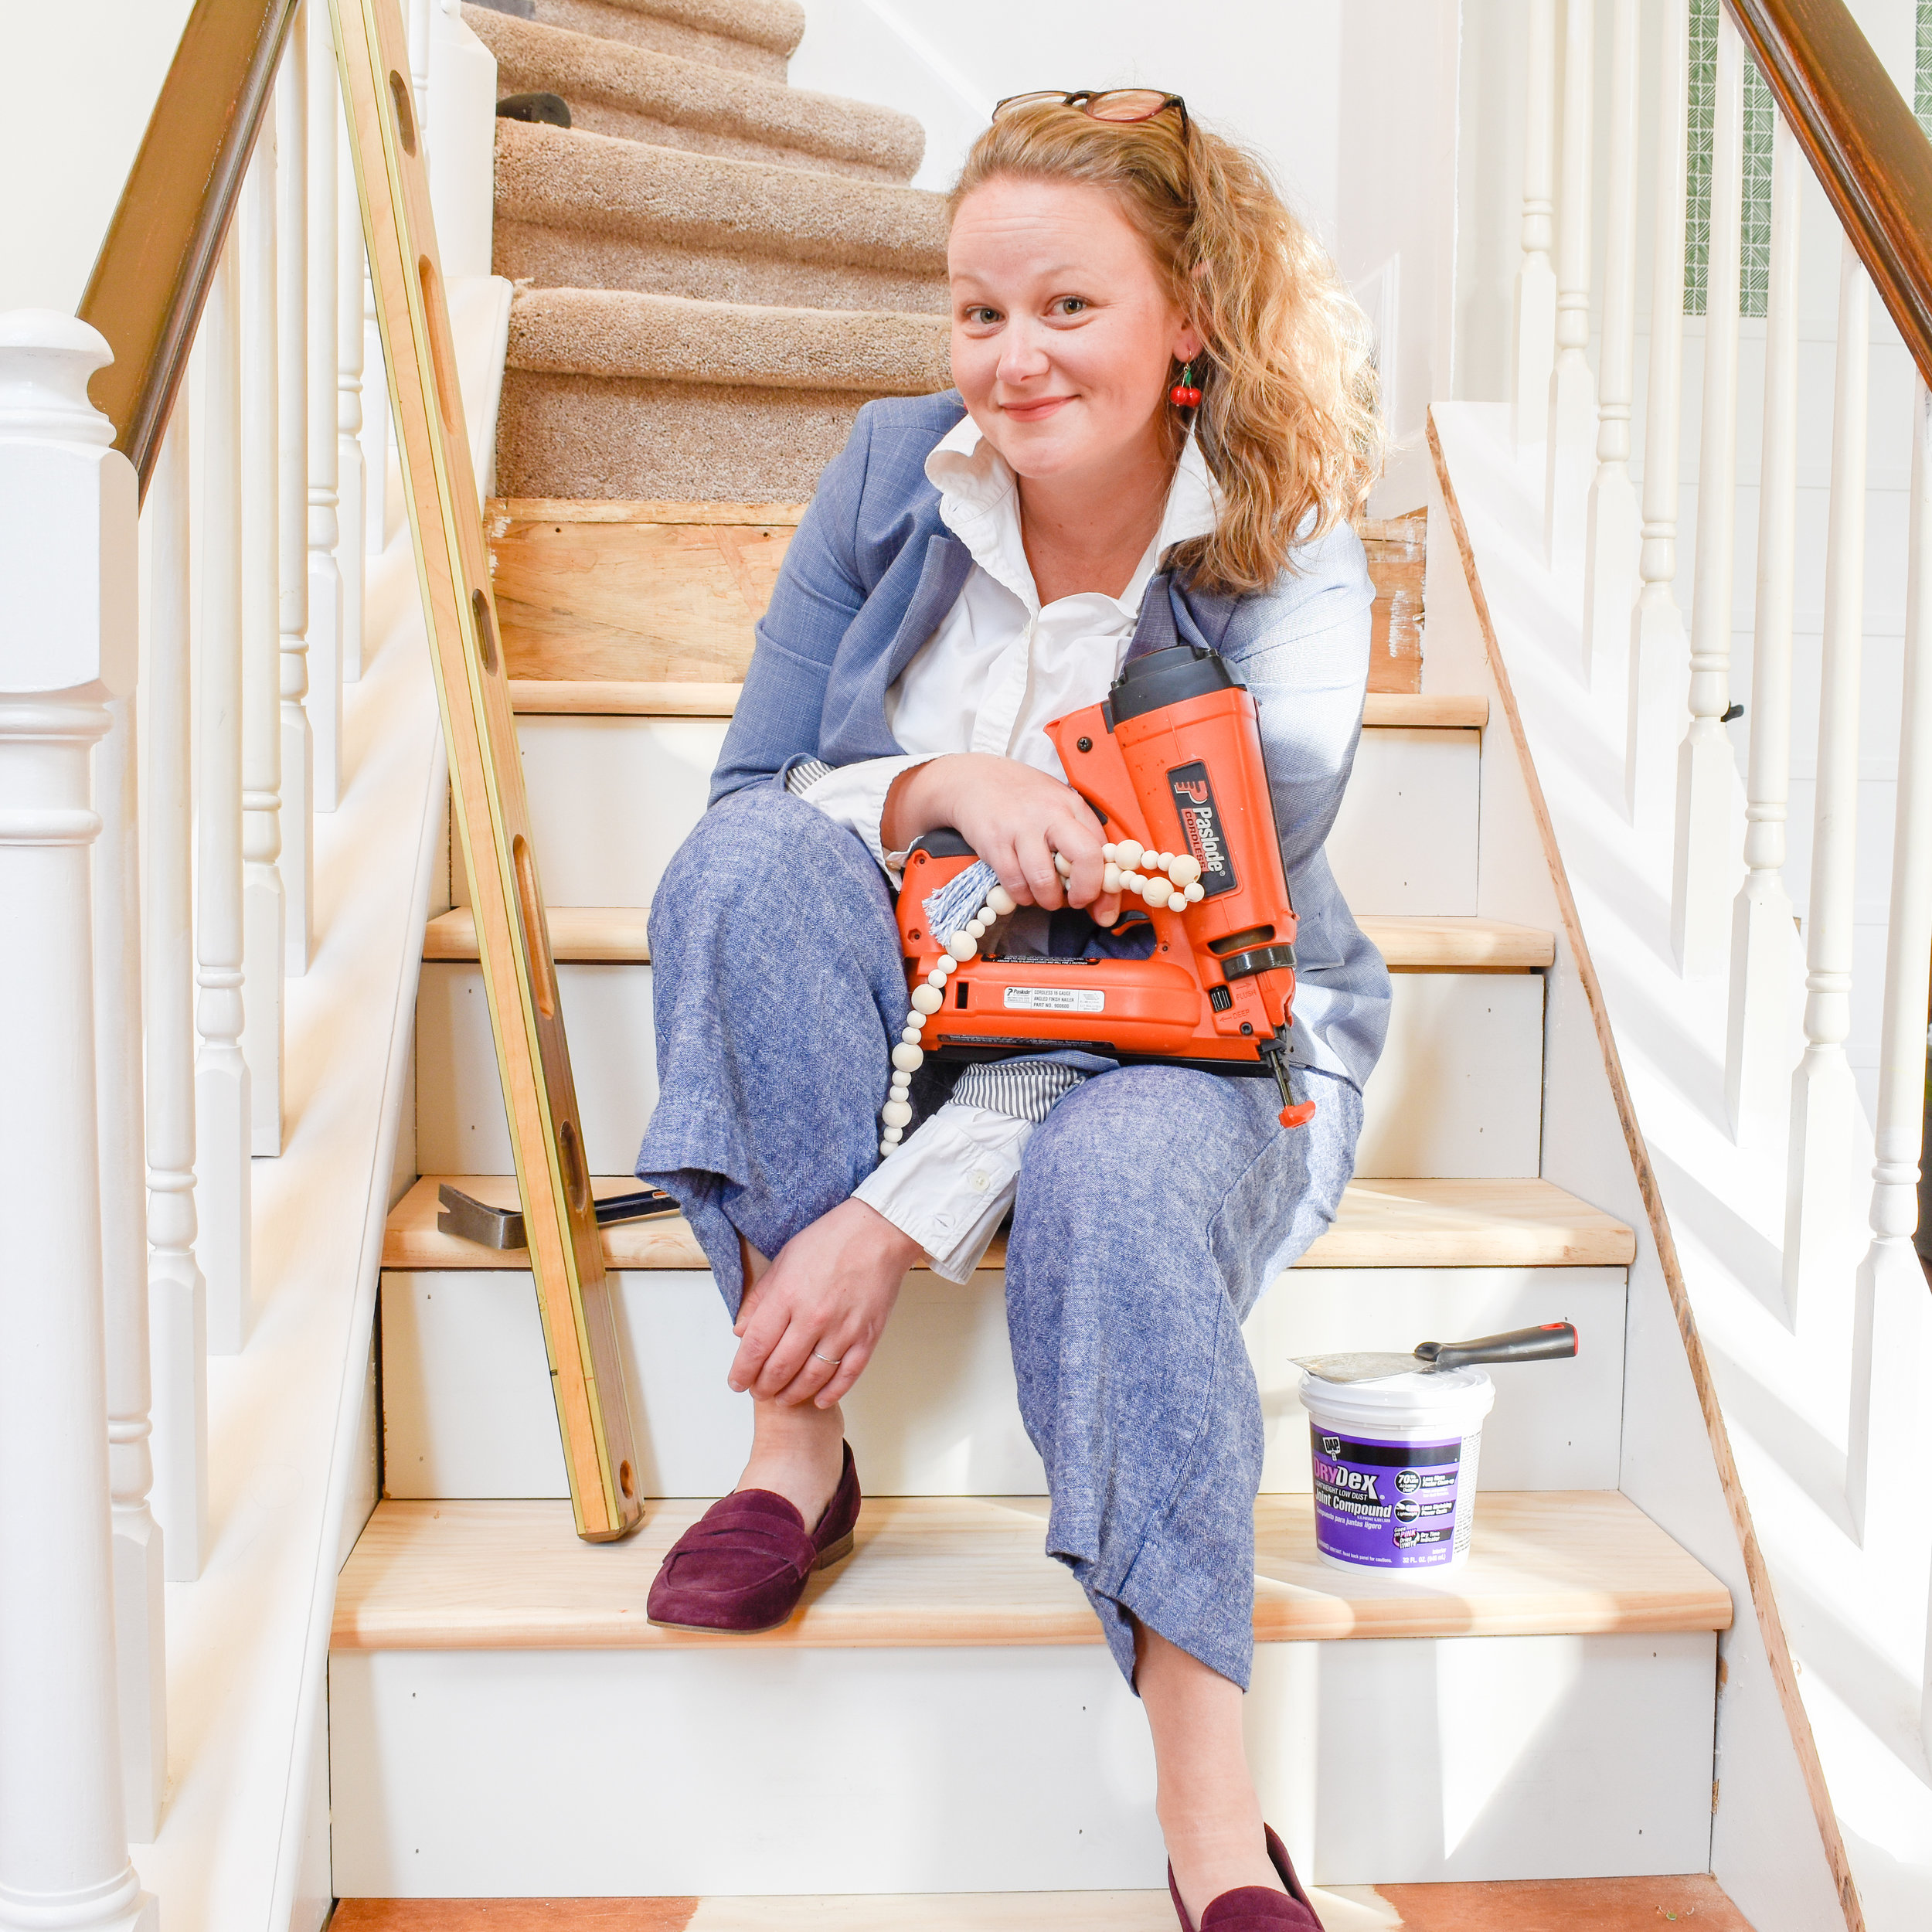 women with power tools - DIY home improvement blogs for women